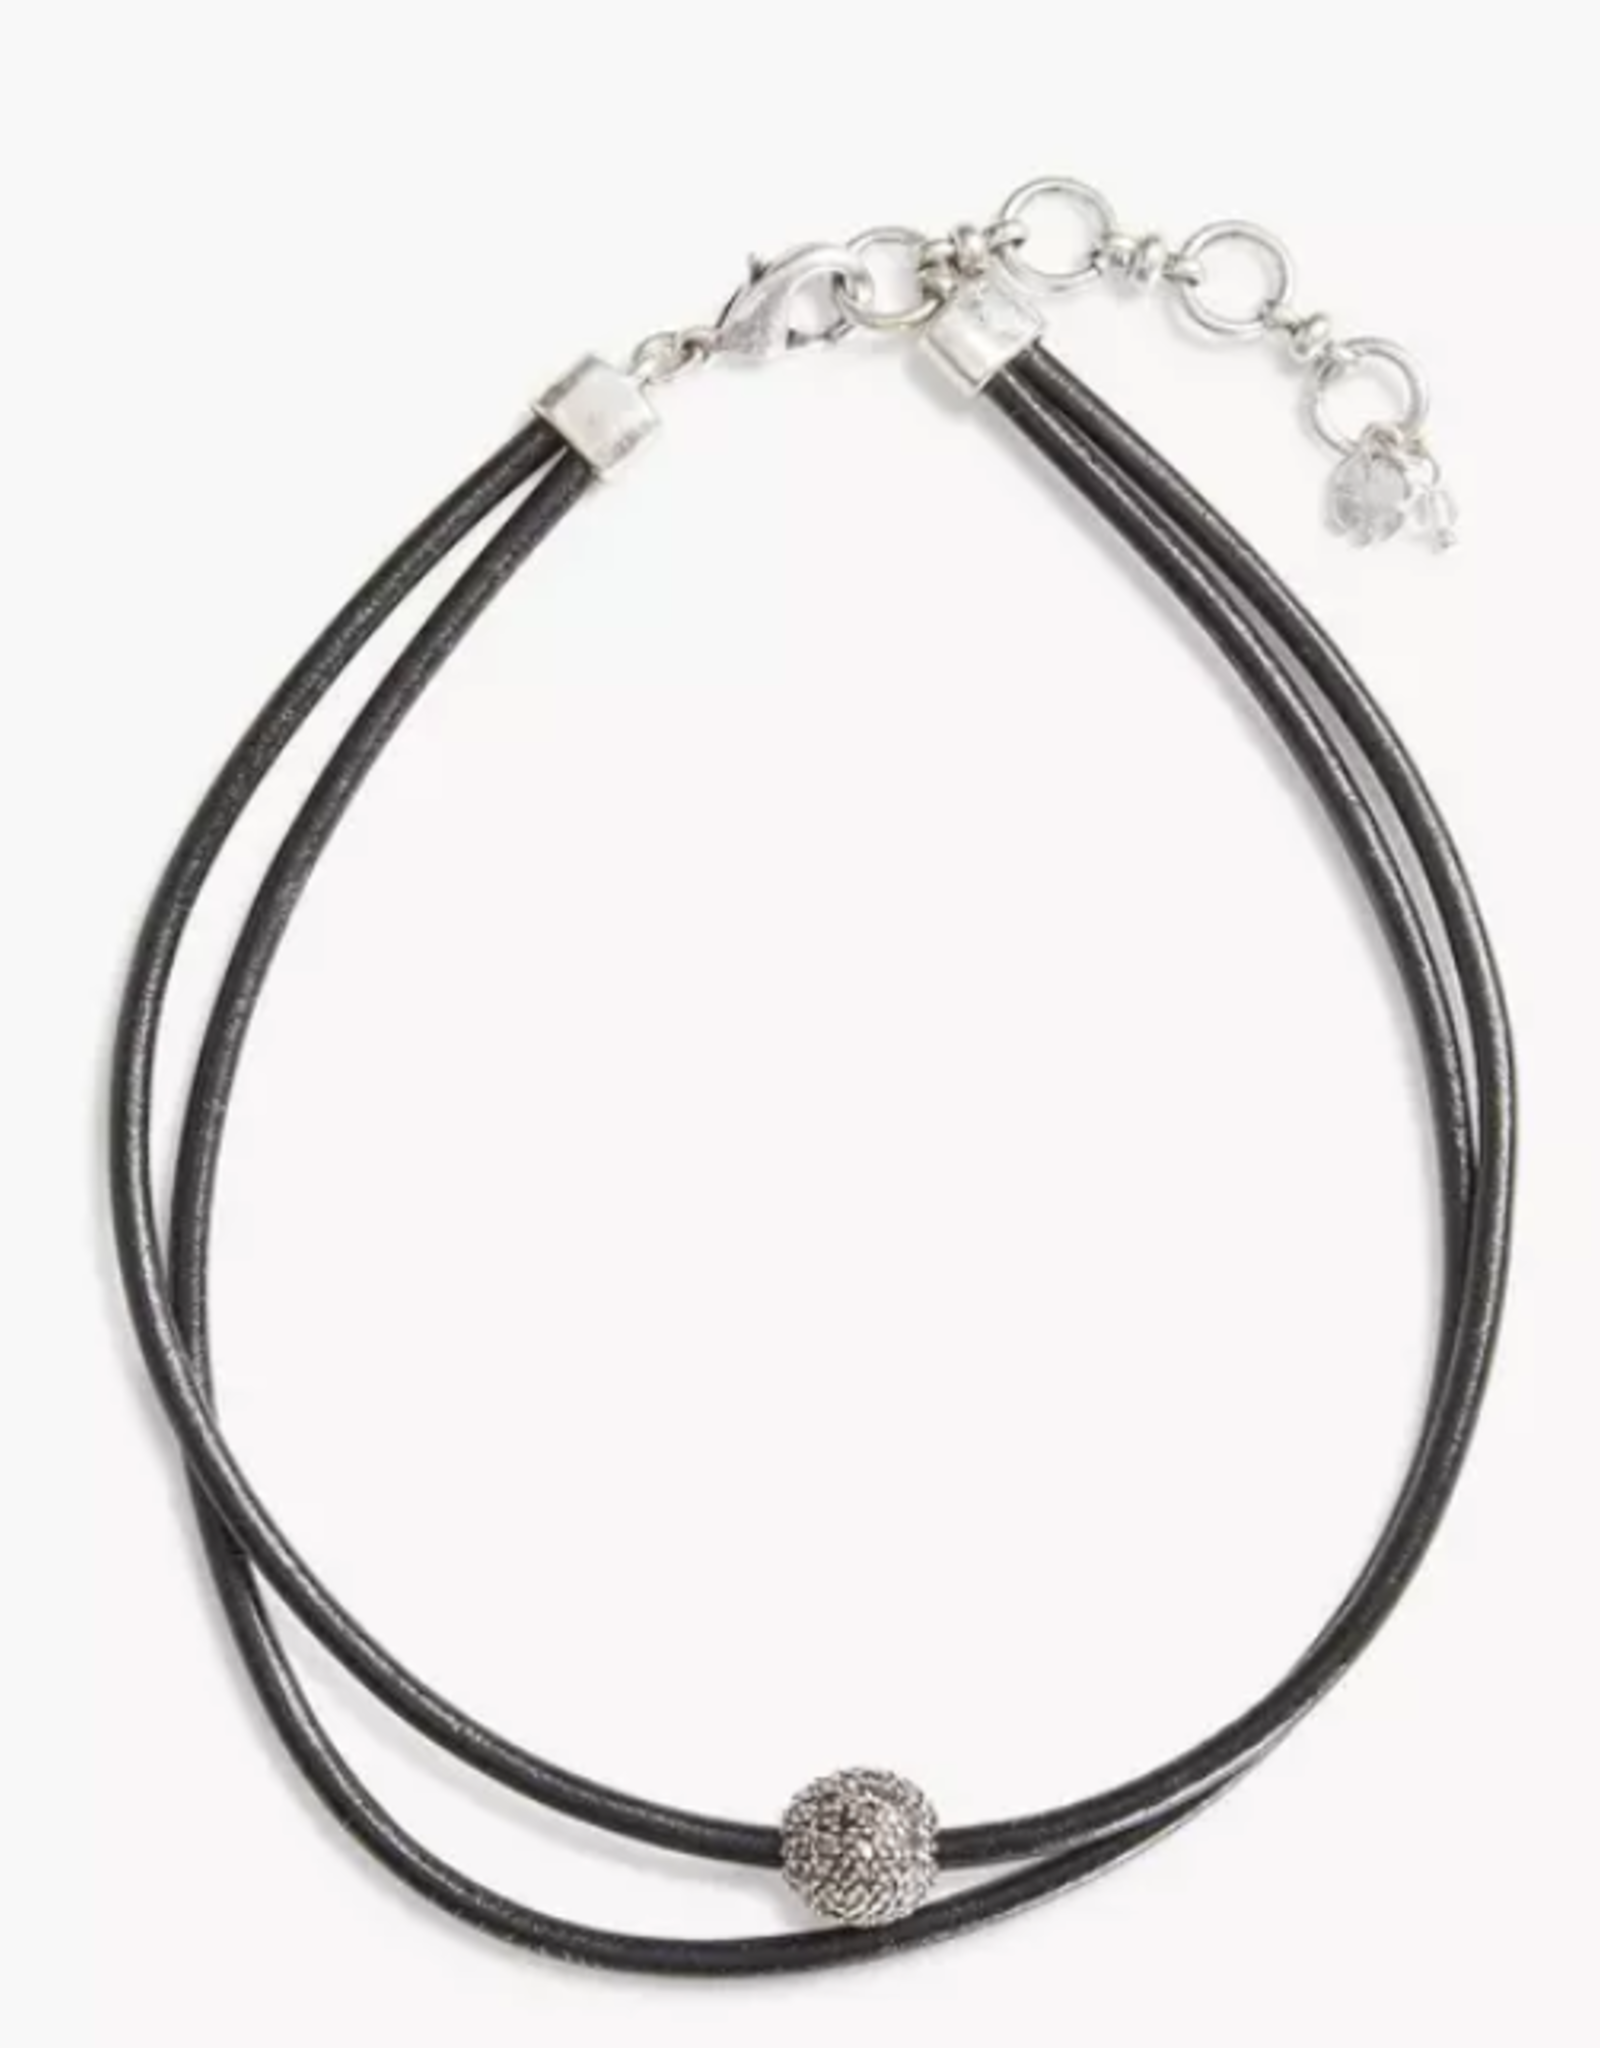 Black leather choker silver